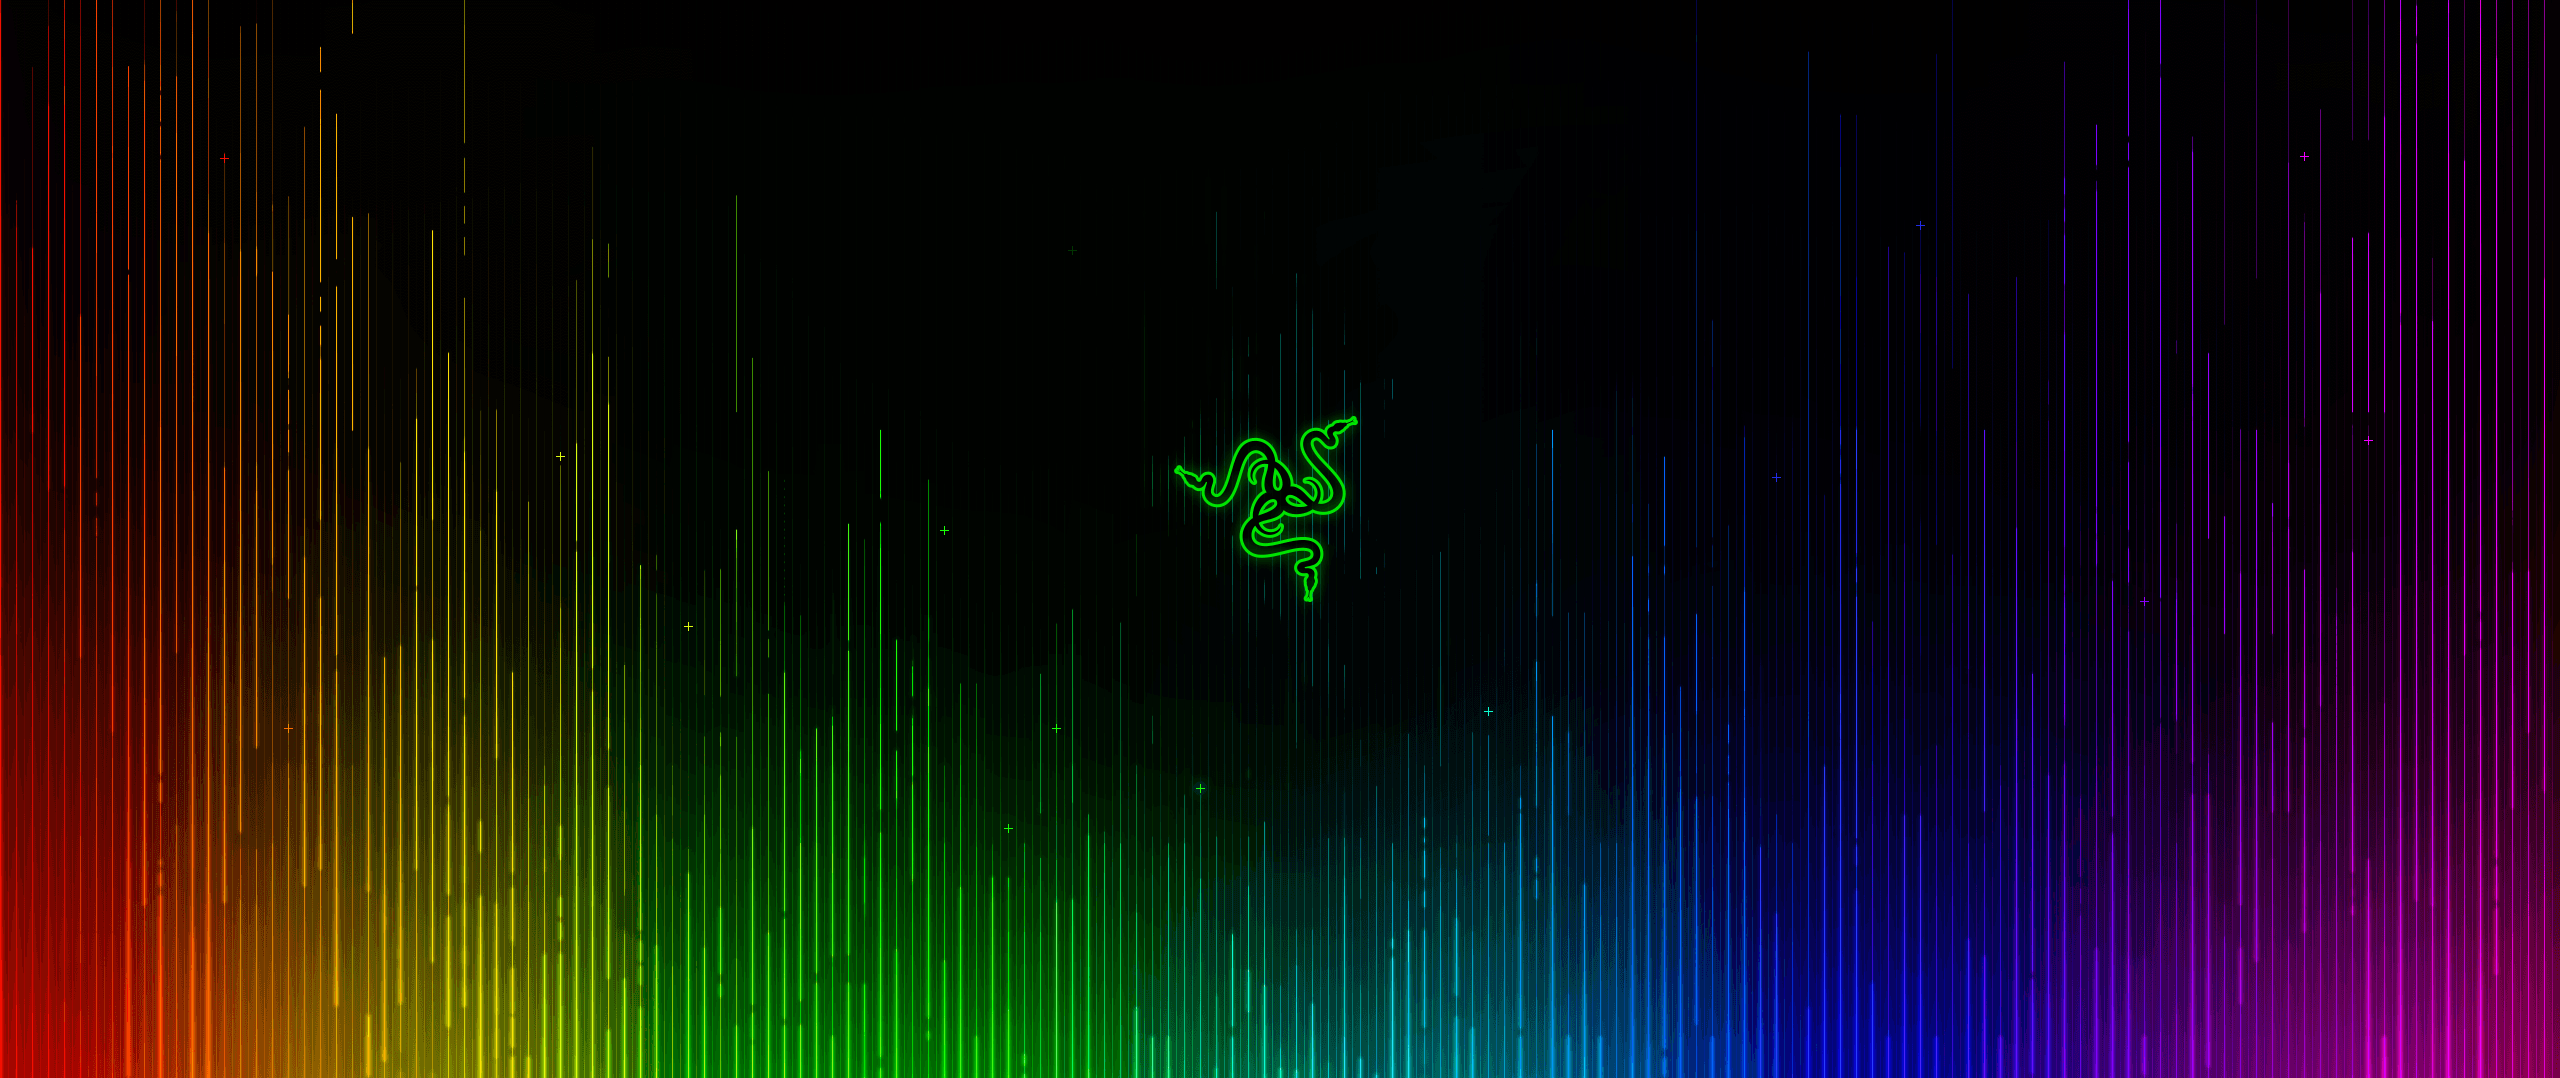 Razer and Tencent are joining forces for future innovation in mobile gaming